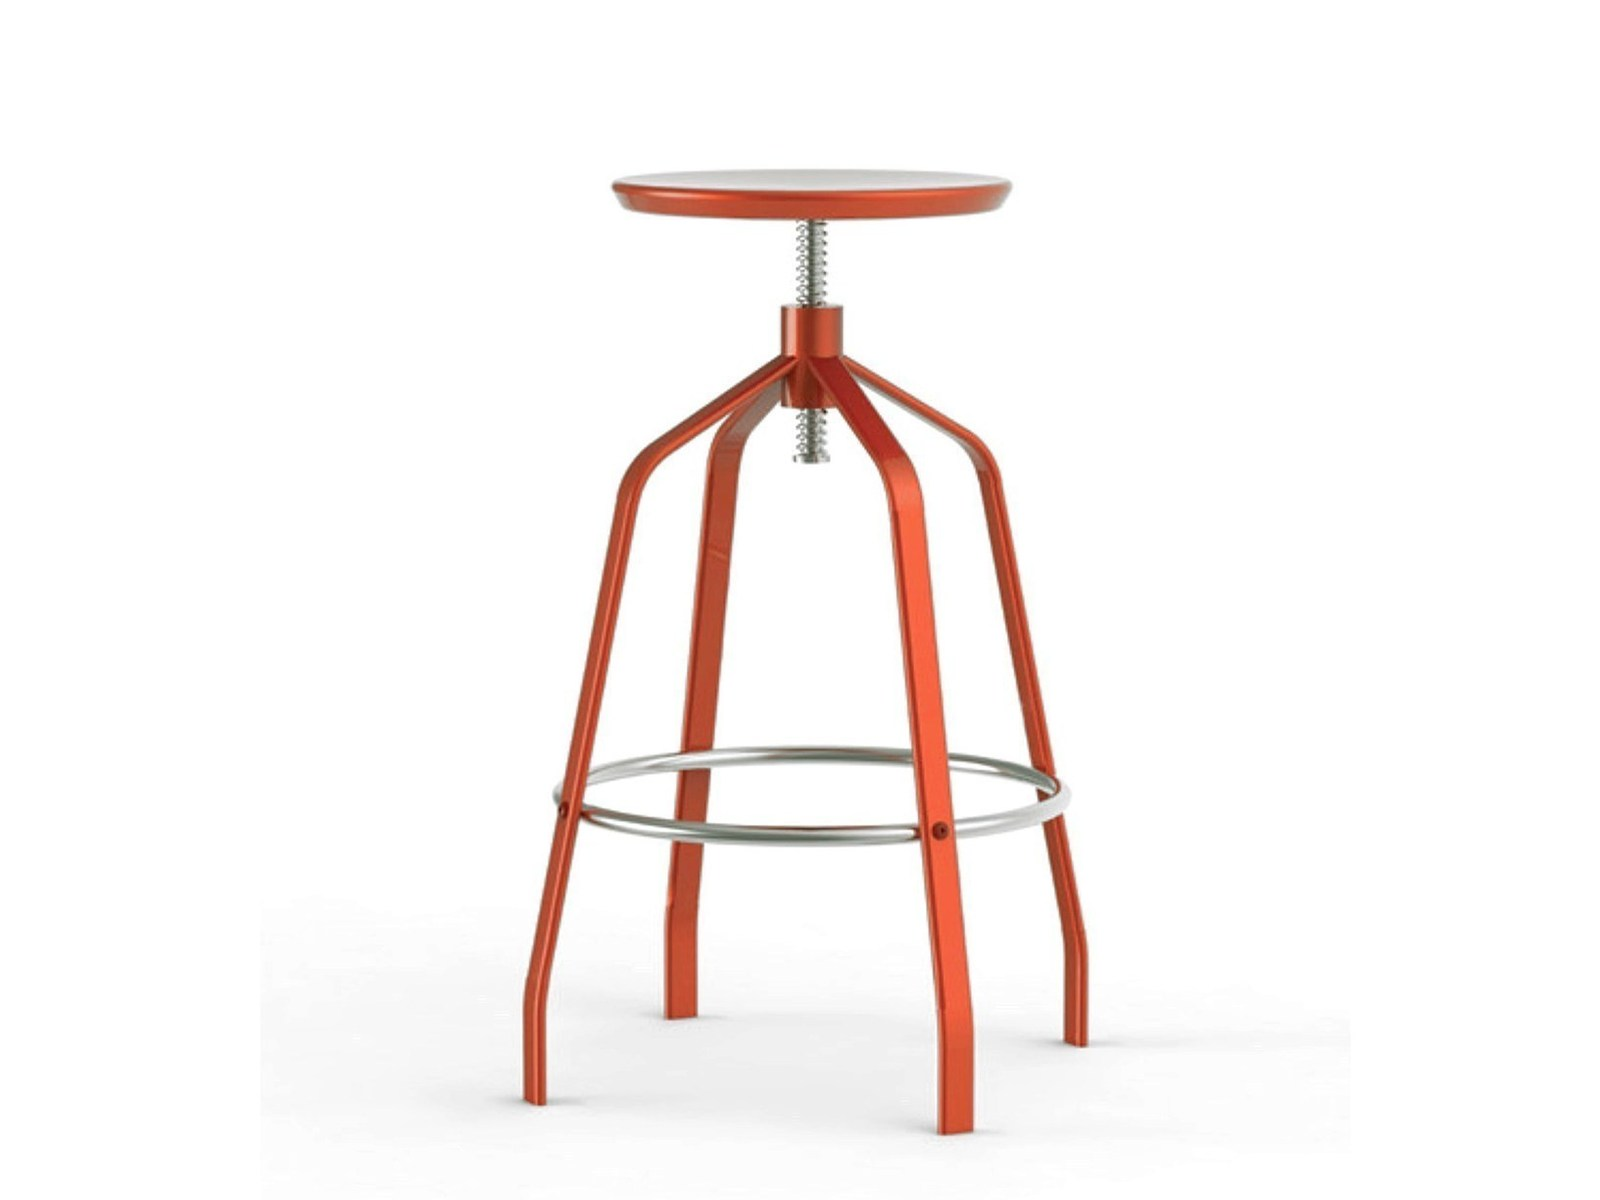 elegant-minimalist-adjustable-height-bar-stool-2-thumb-1600xauto-53674